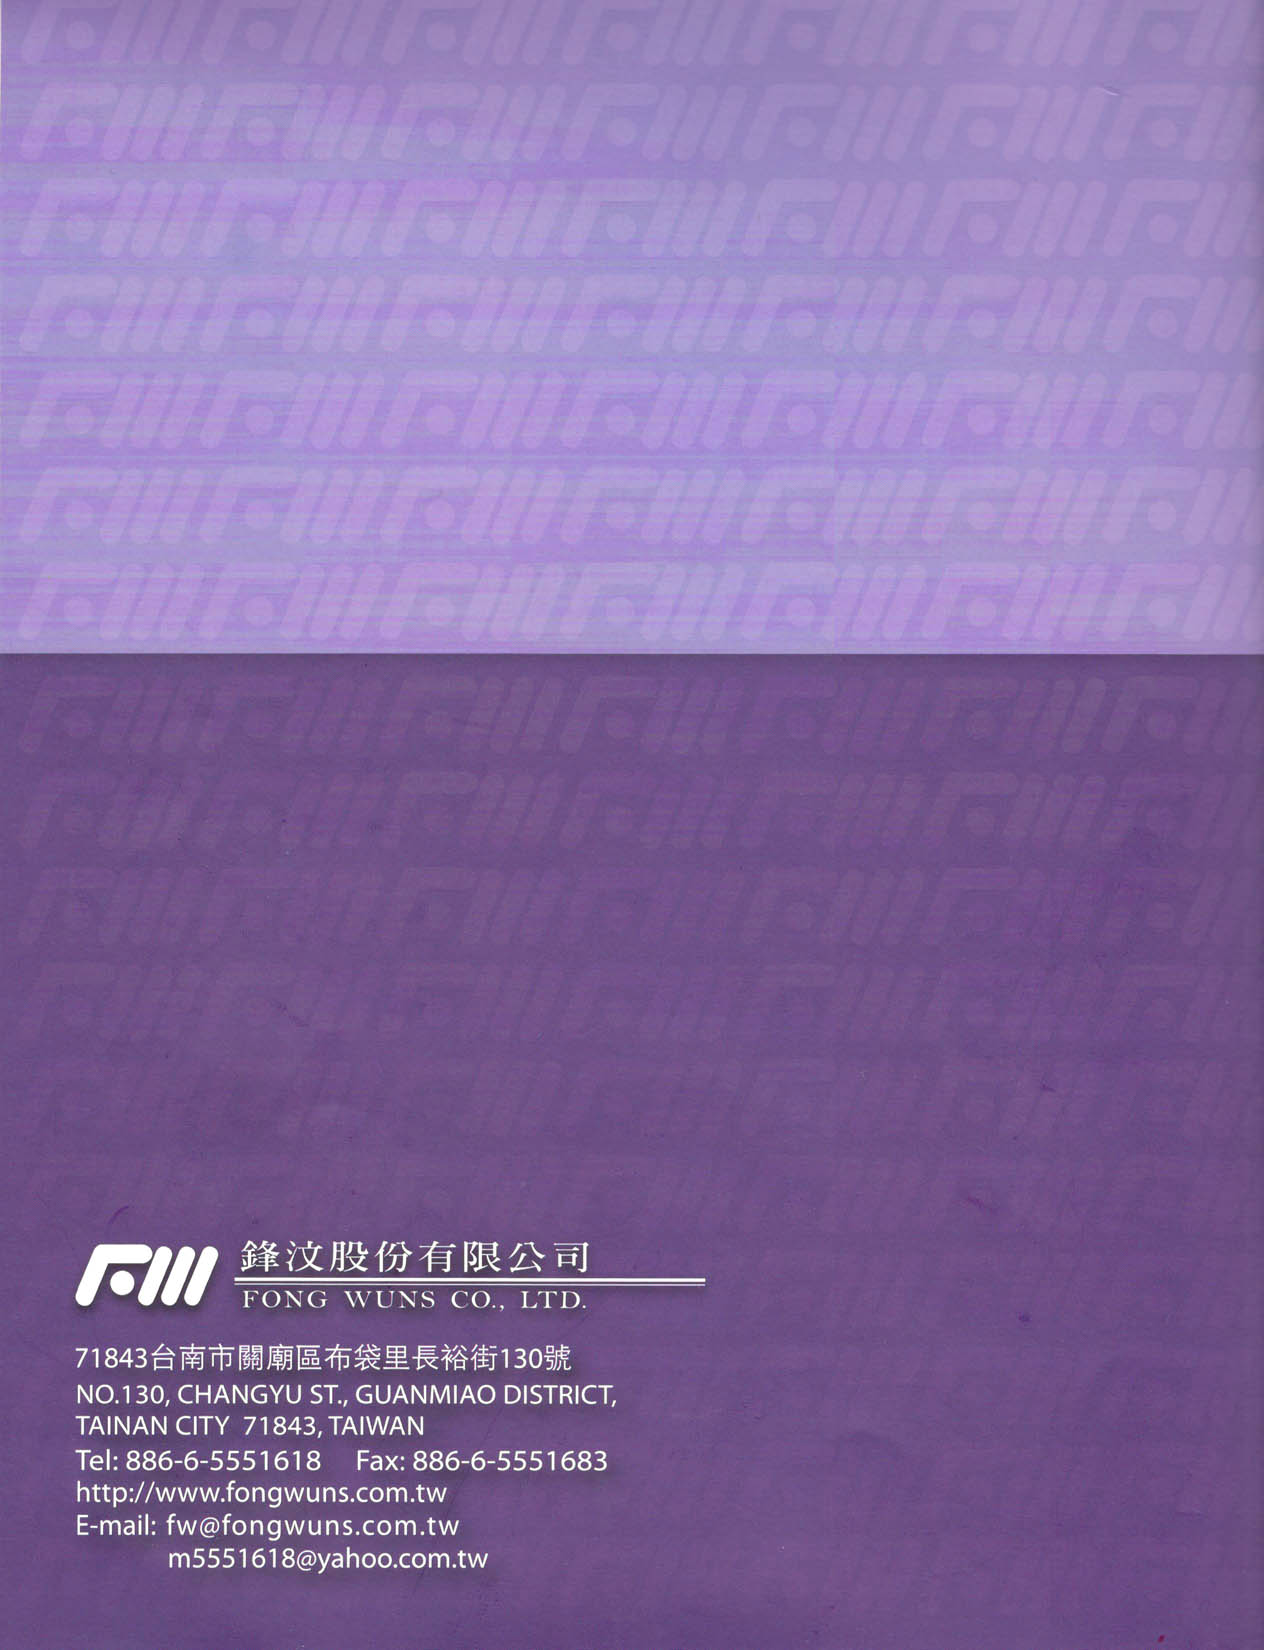 FONG WUNS CO., LTD.  Online Catalogues